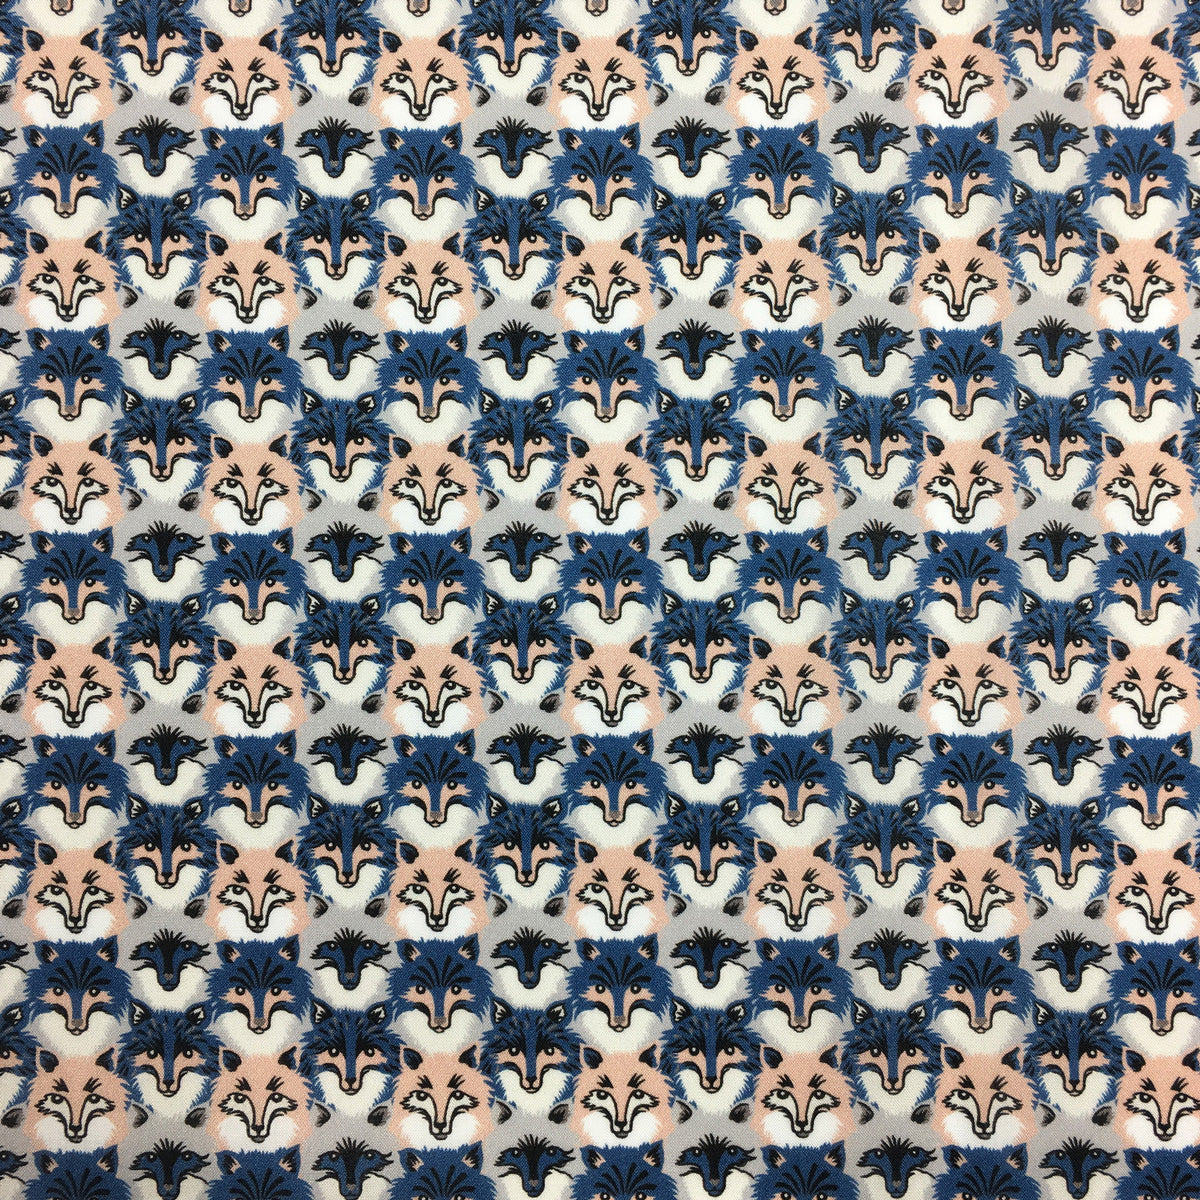 ALL SIZES WOLF PACK - LIBERTY TANA LAWN - 100/% COTTON FABRIC A